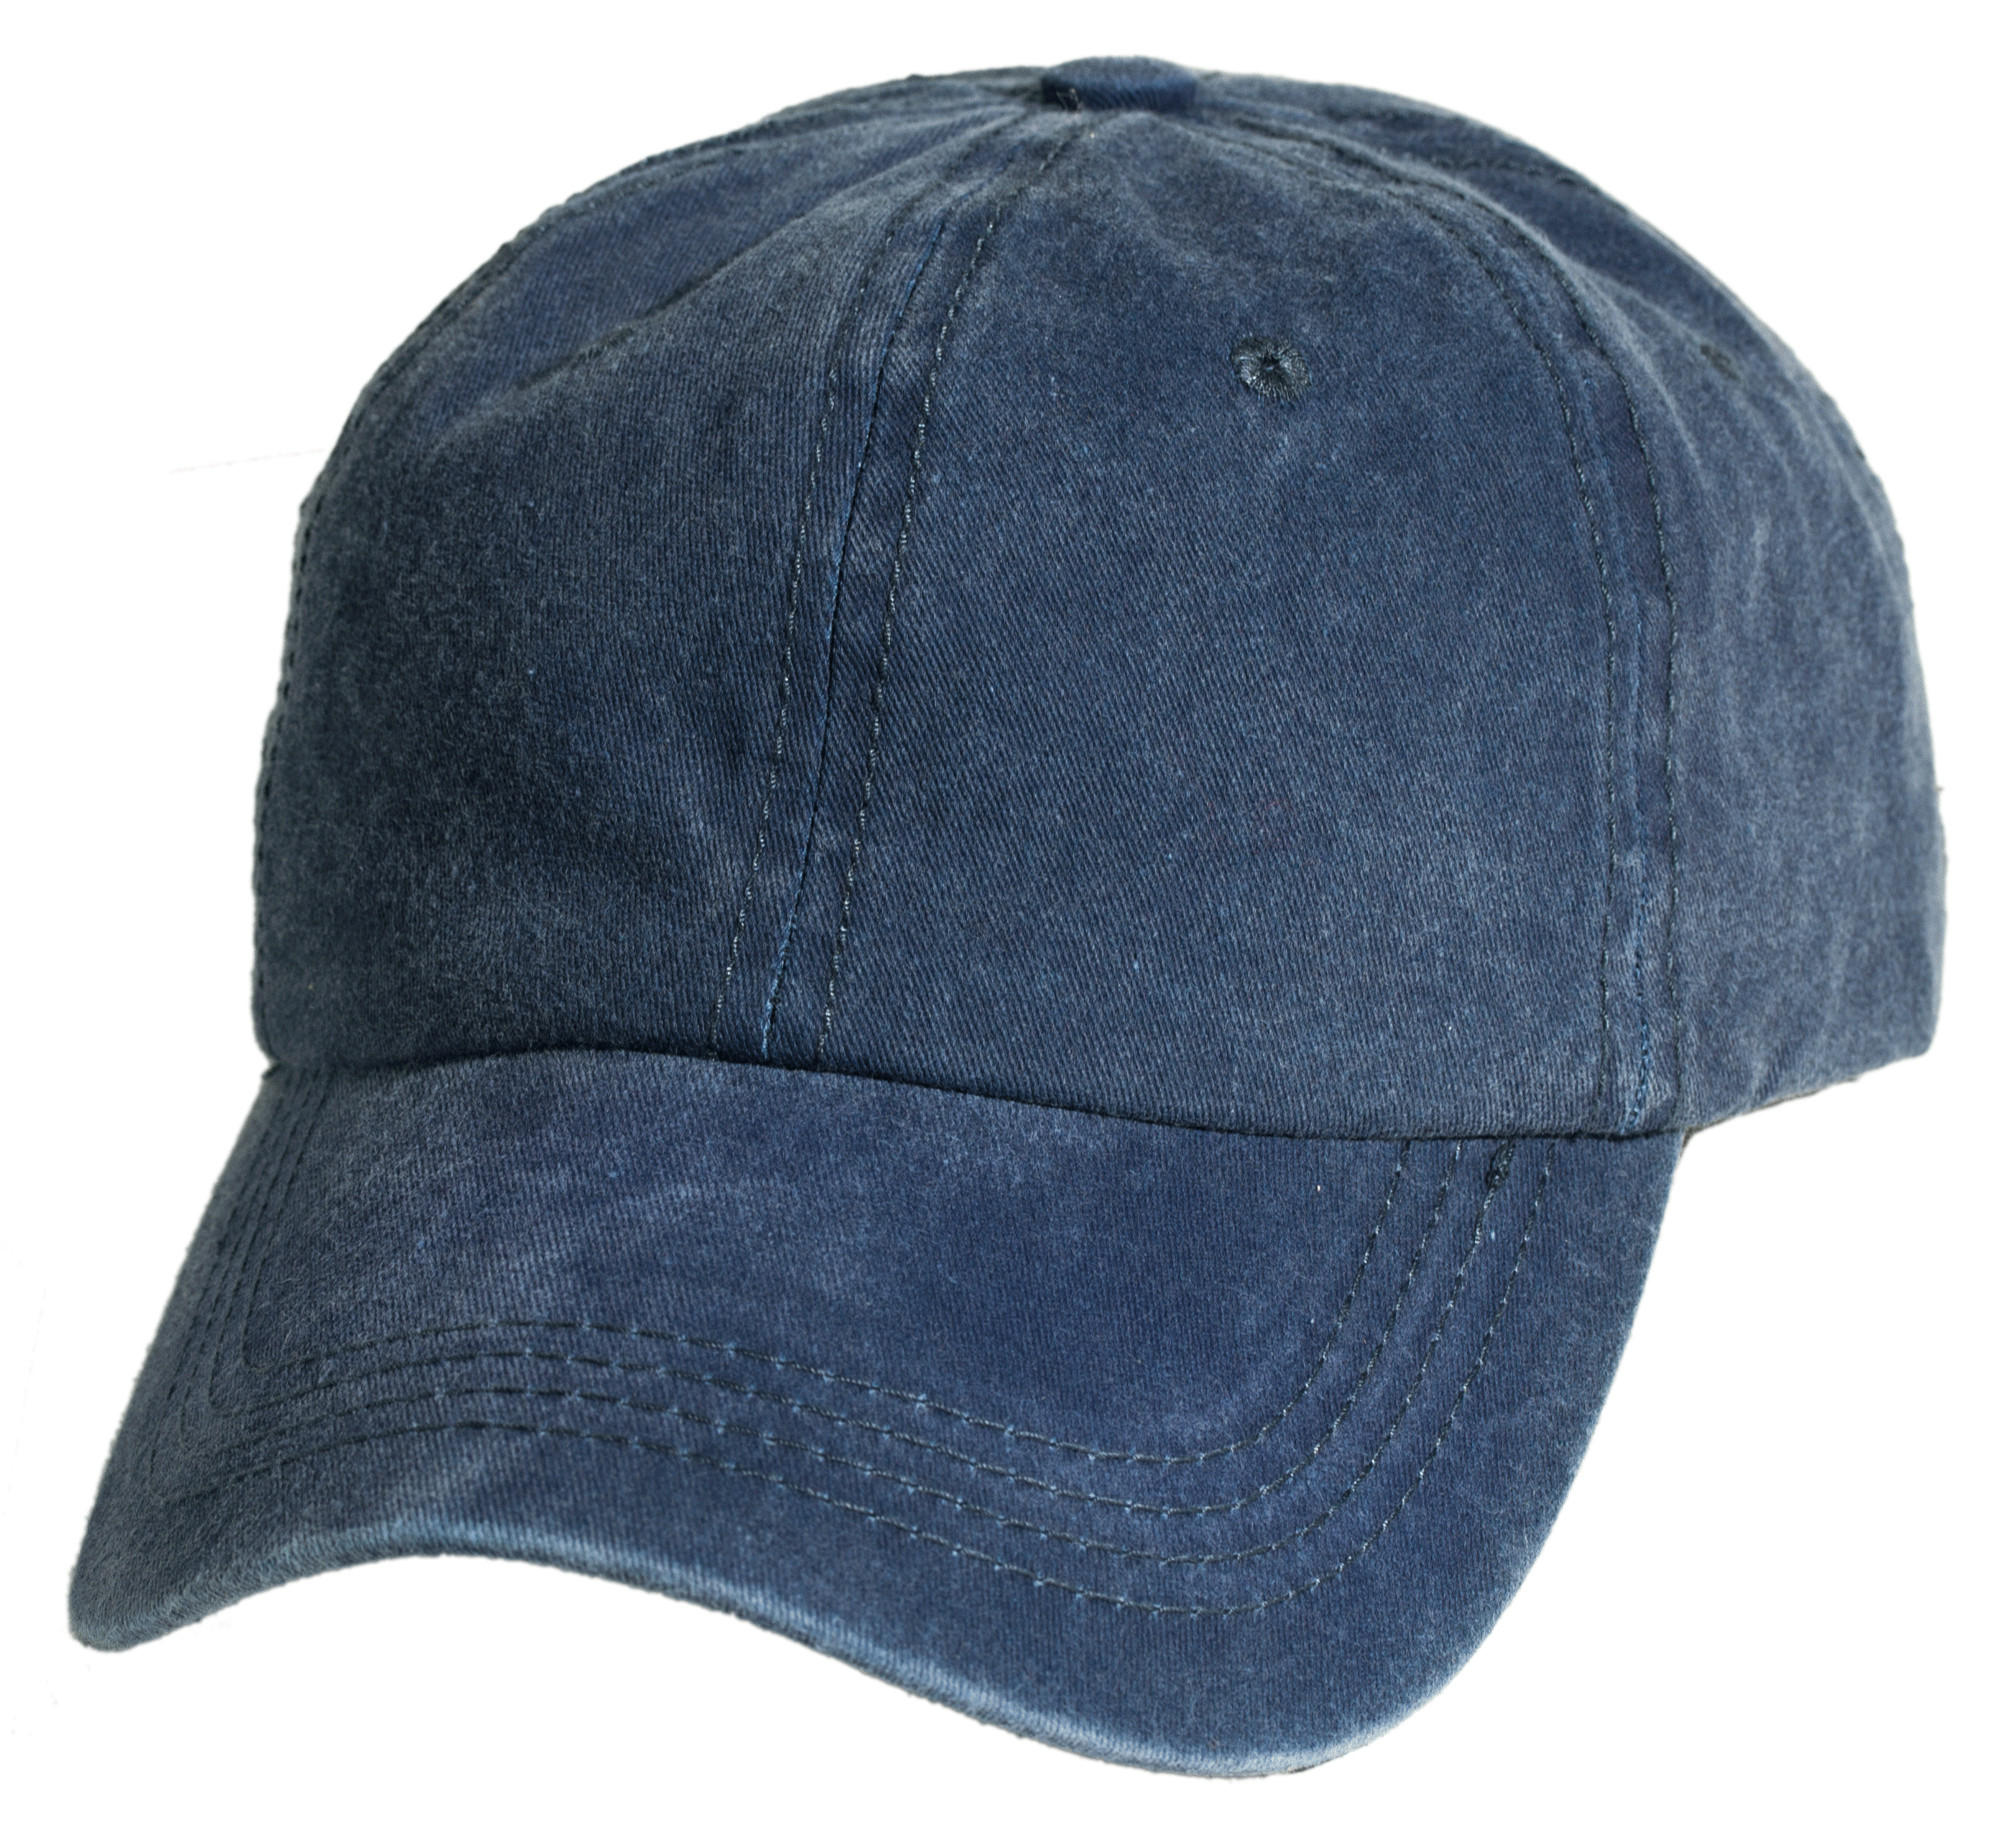 Washed Cotton Baseball Cap by Levine Hat from Levine Hat Co. e42a7d25877